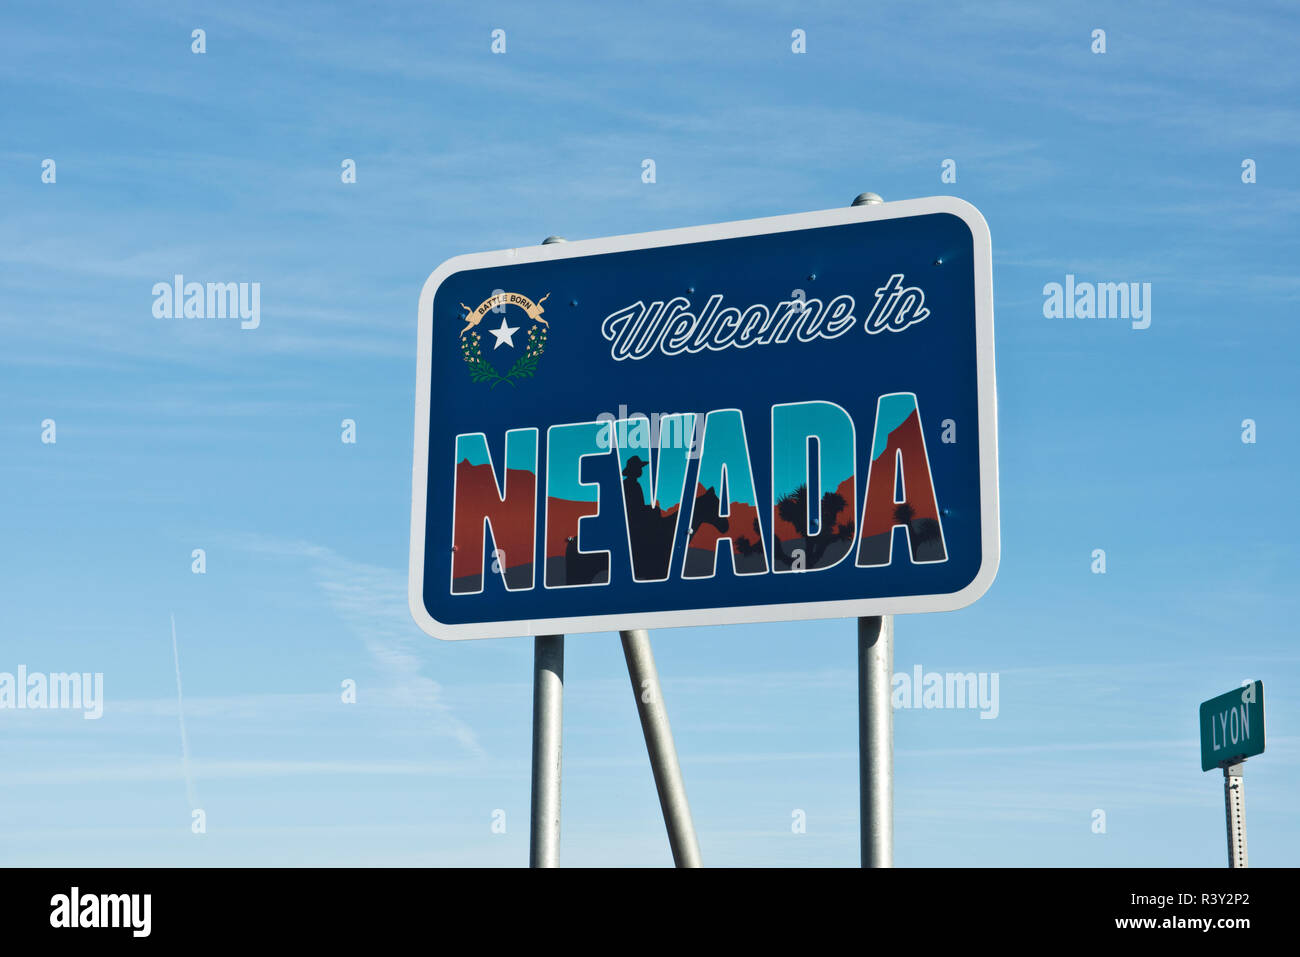 USA, Nevada. Roadside 'Welcome' sign - Stock Image